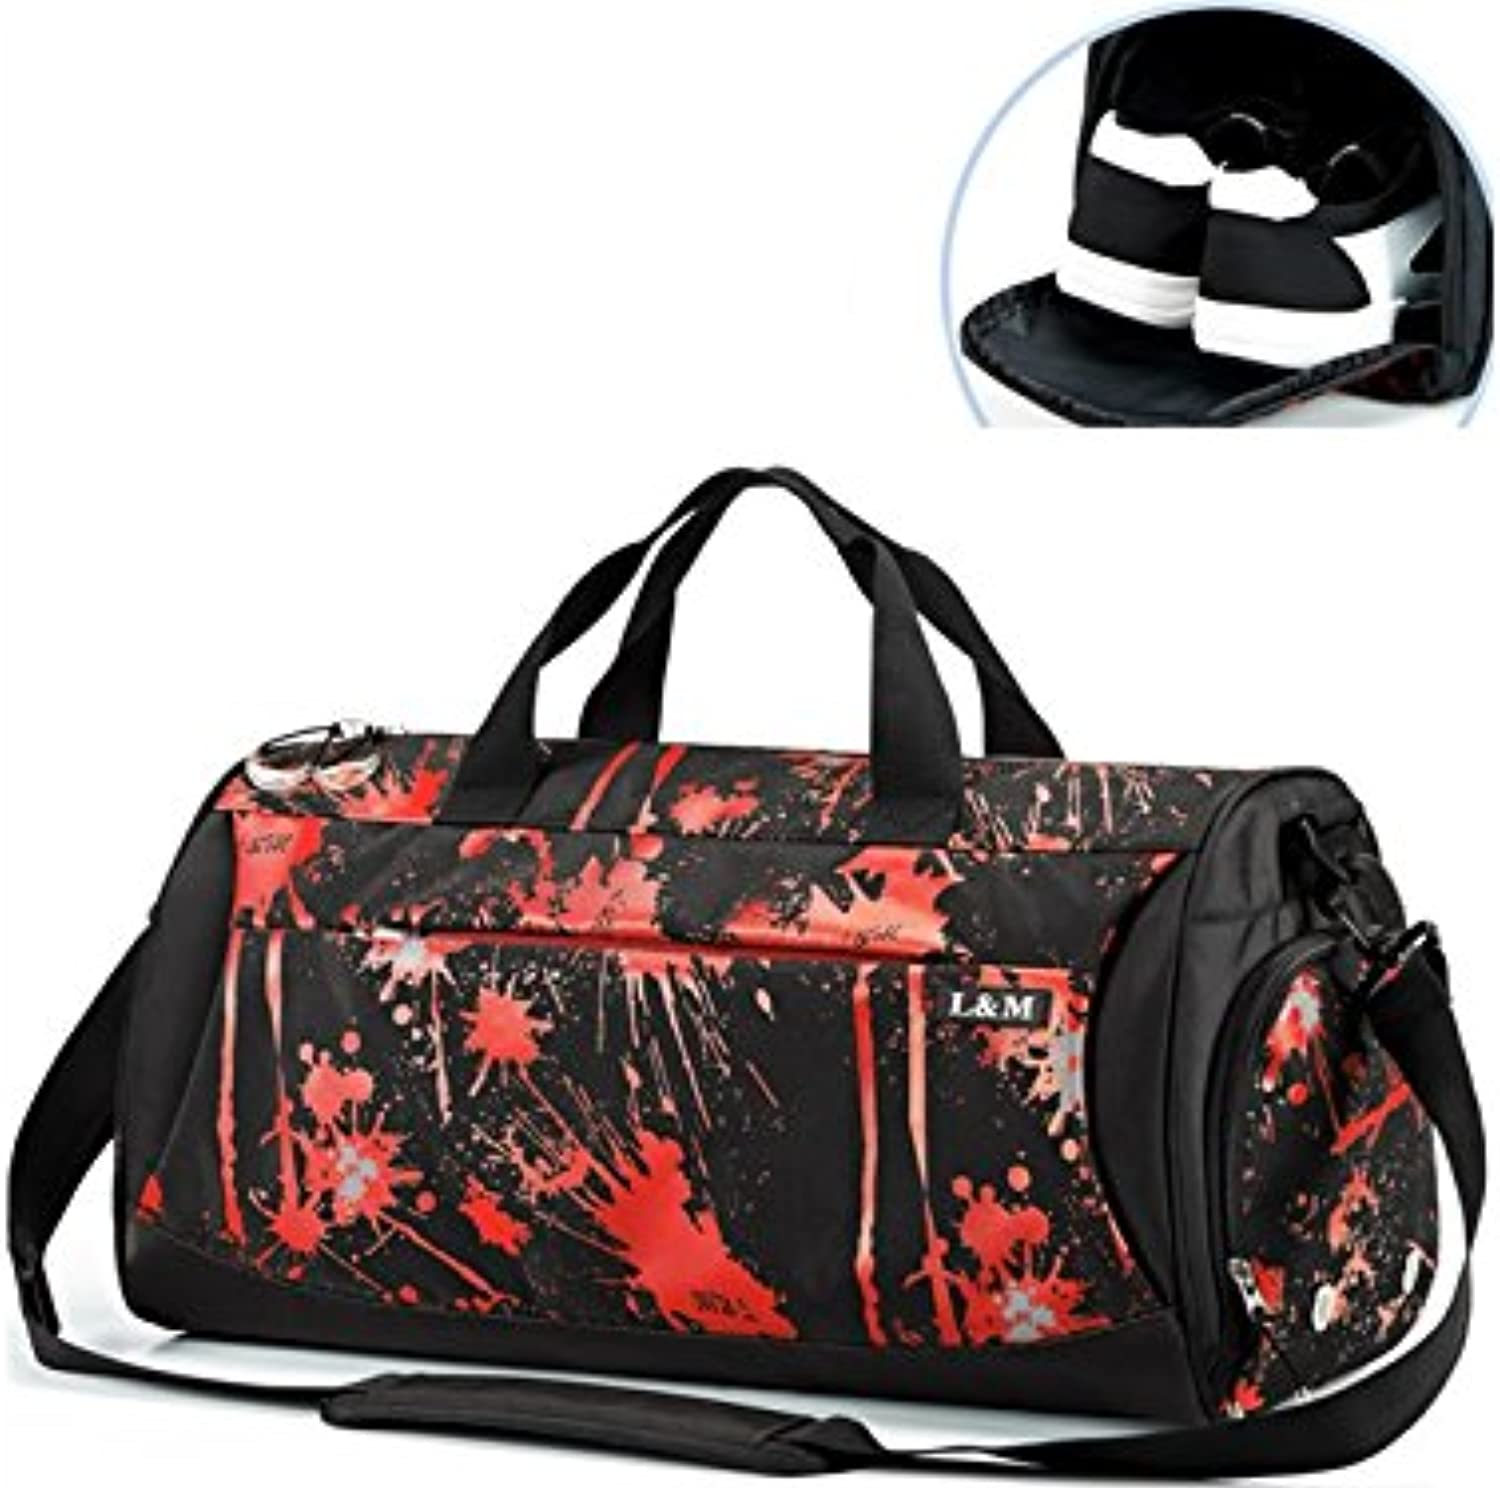 d12f41873 Hiking Outdoor Large Gym Bag Sports Holdall Travel Weekender Duffel Bag  with shoes Compartment(Water Flower for Outdoor Traveling Capacity Red) ...